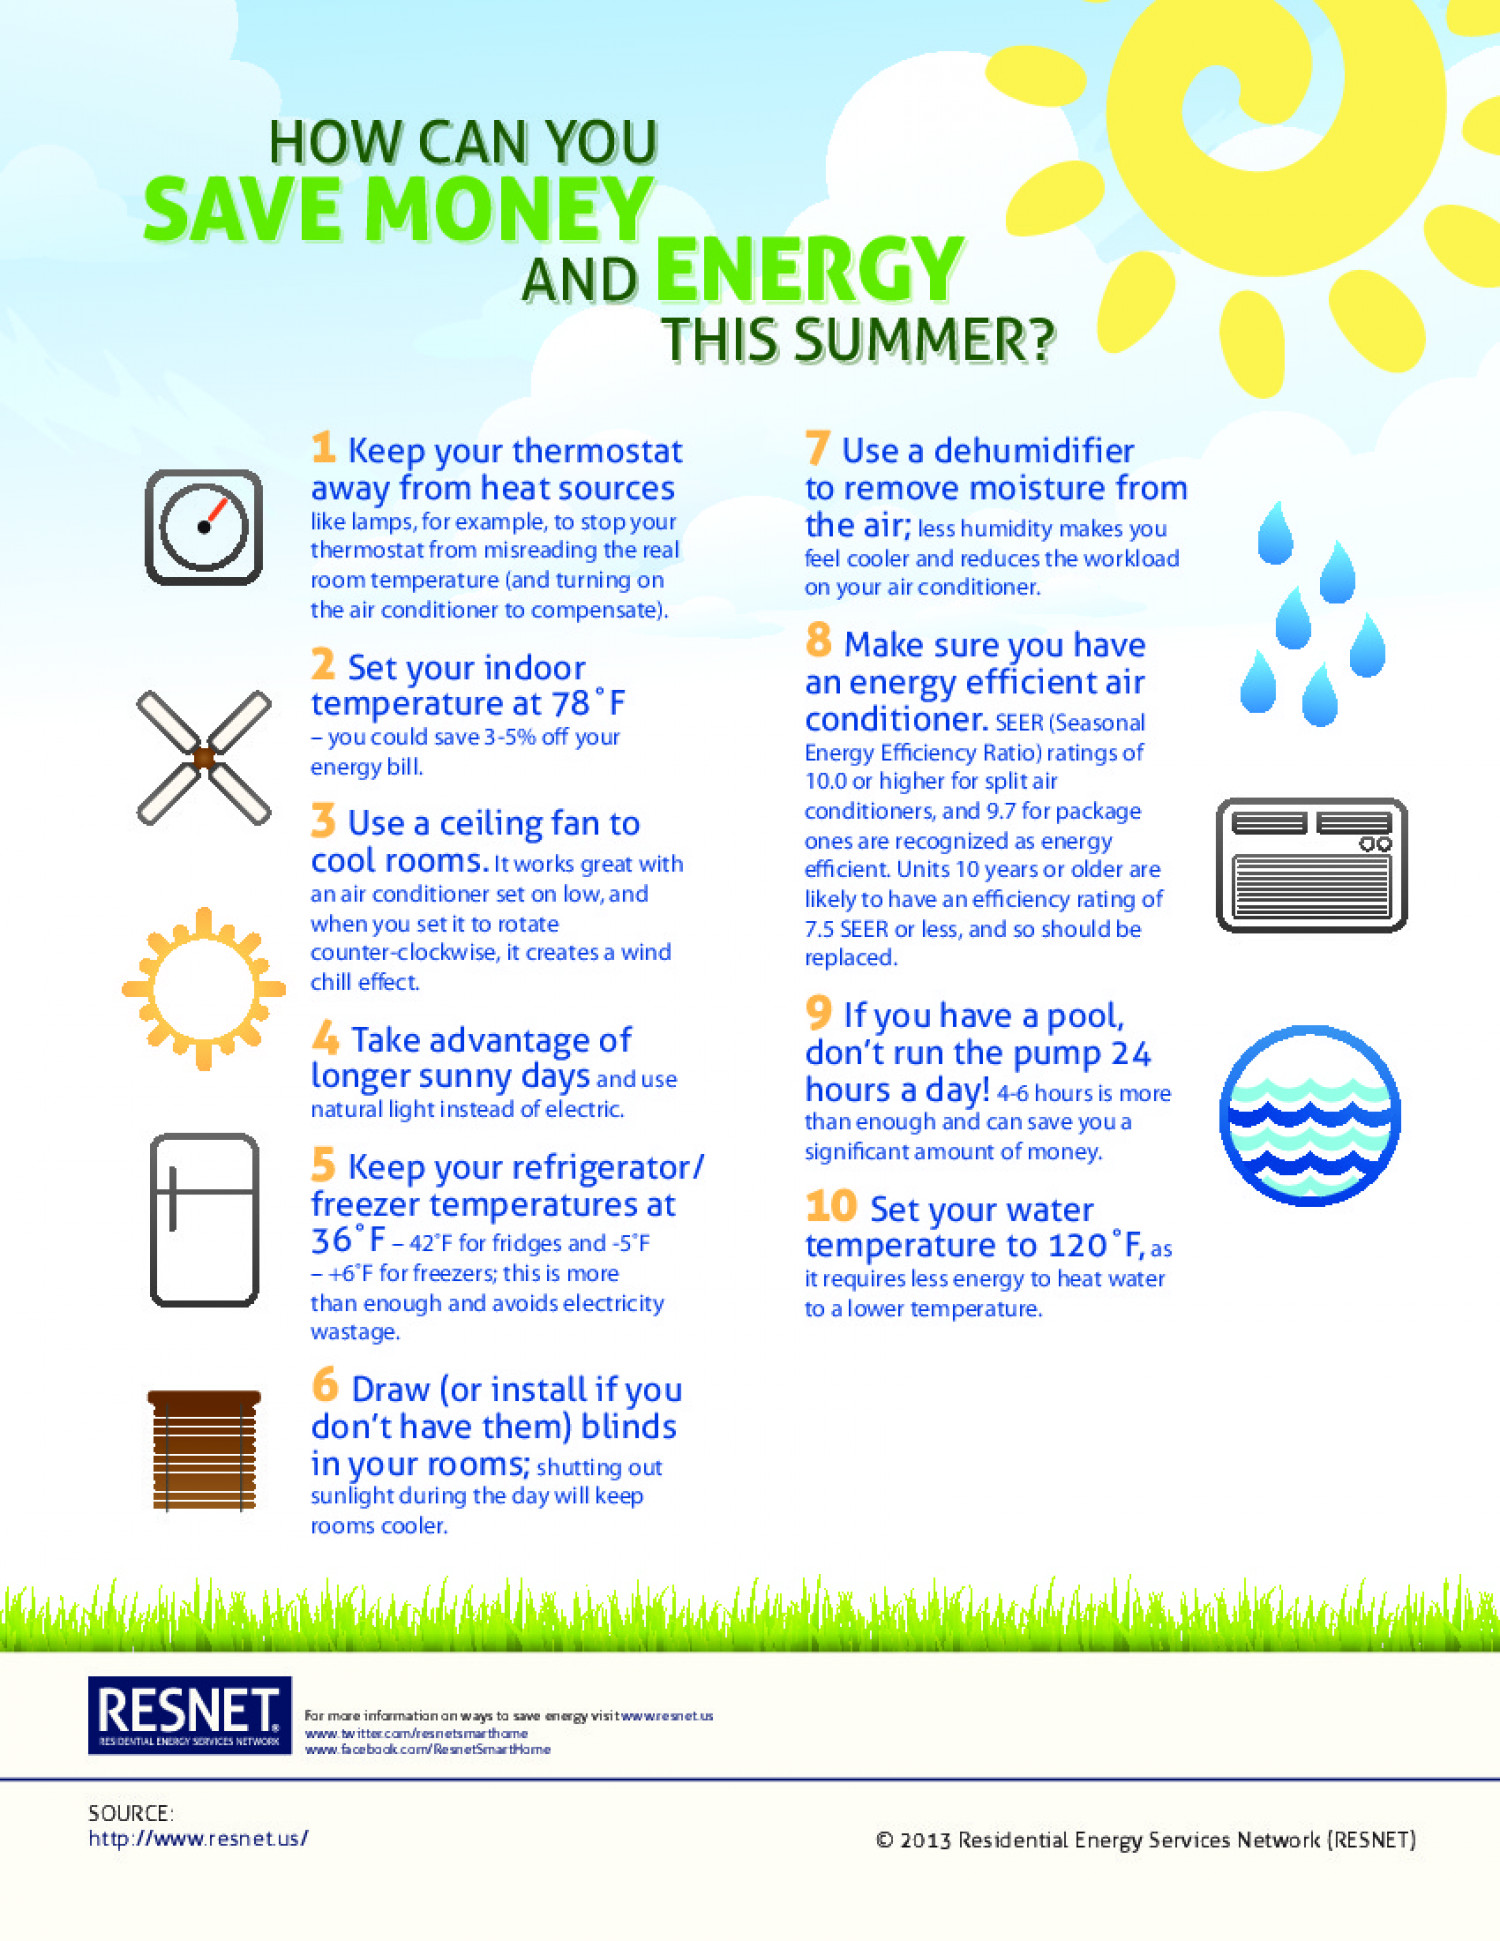 how can you save money and energy this summer visual ly